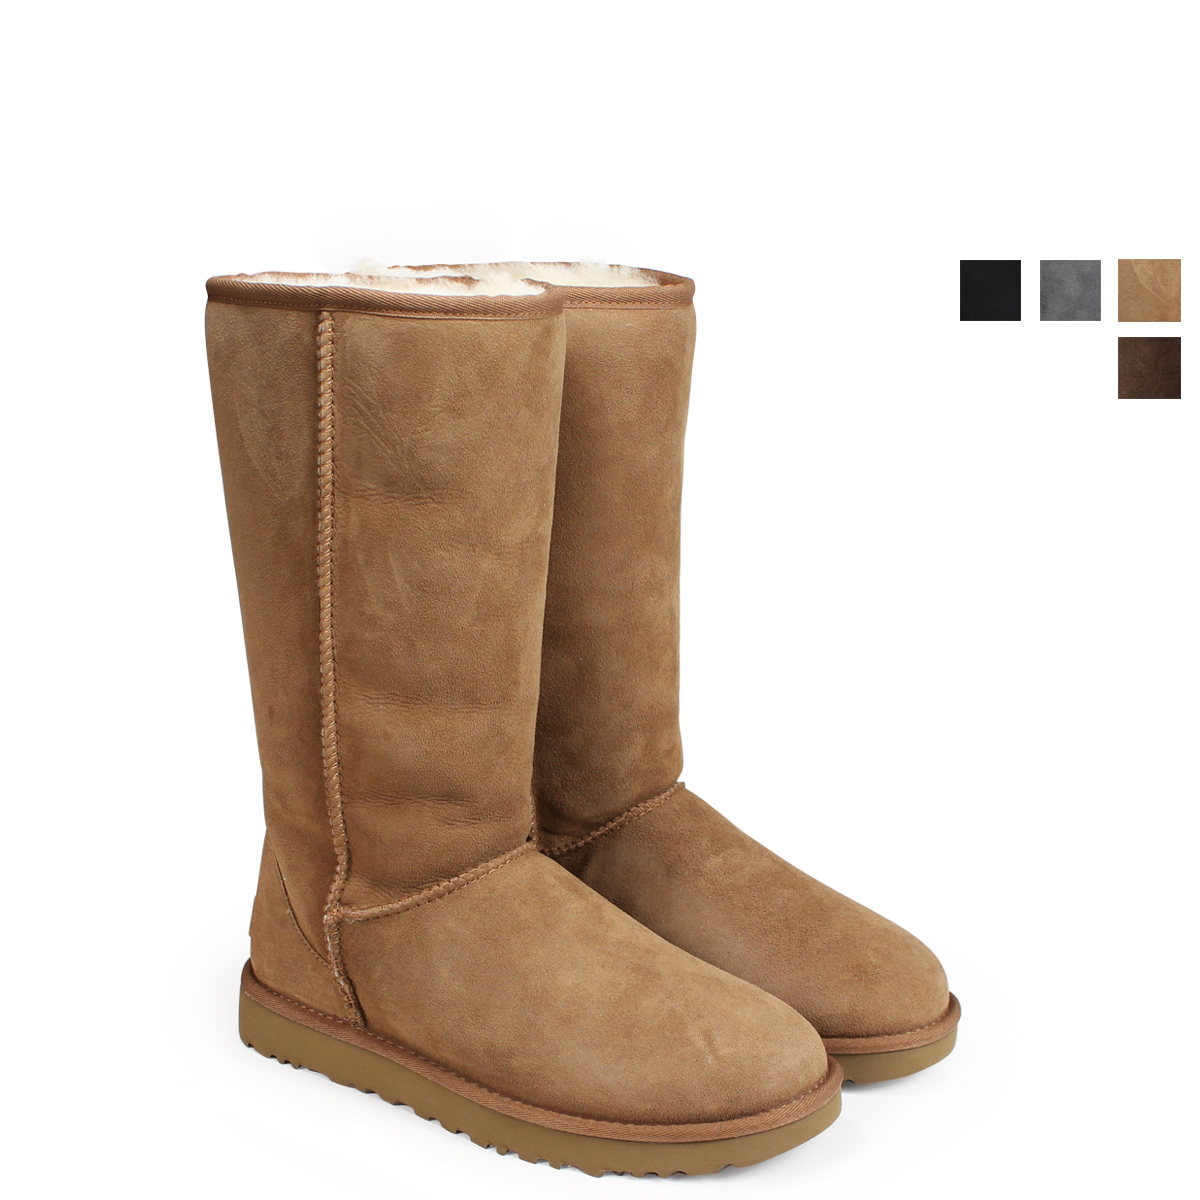 f7b2d456482d UGG CLASSIC TALL II BOOT アグムートンブーツクラシックトール 1016224 Lady s  load planned  Shinnyu load in reservation product 9 12 containing   189